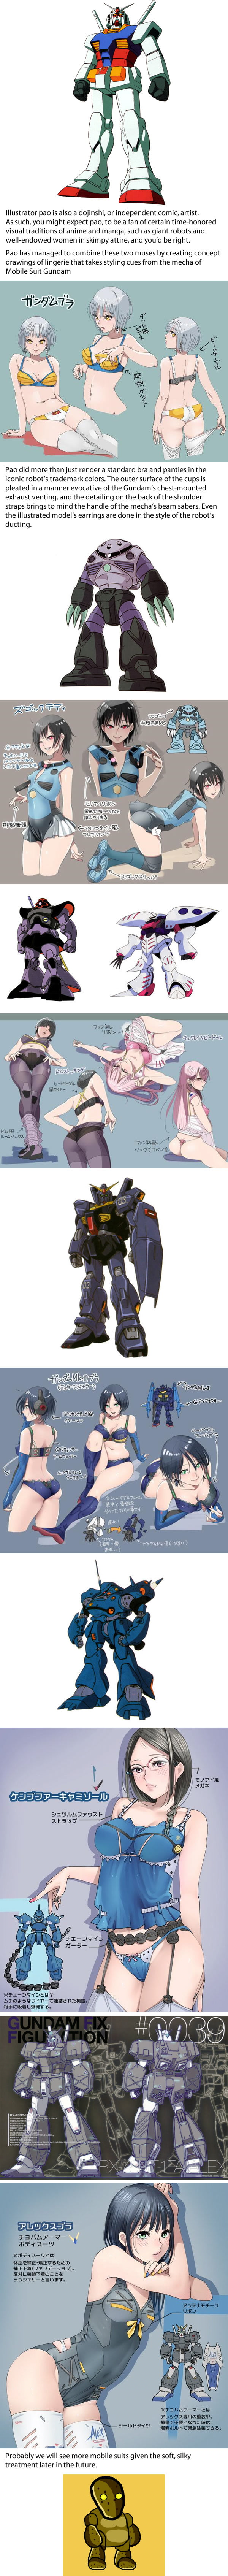 Illustrator reimagines the anime robots of Mobile Suit Gundam as a line of sexy lingerie arts  Arts Anime